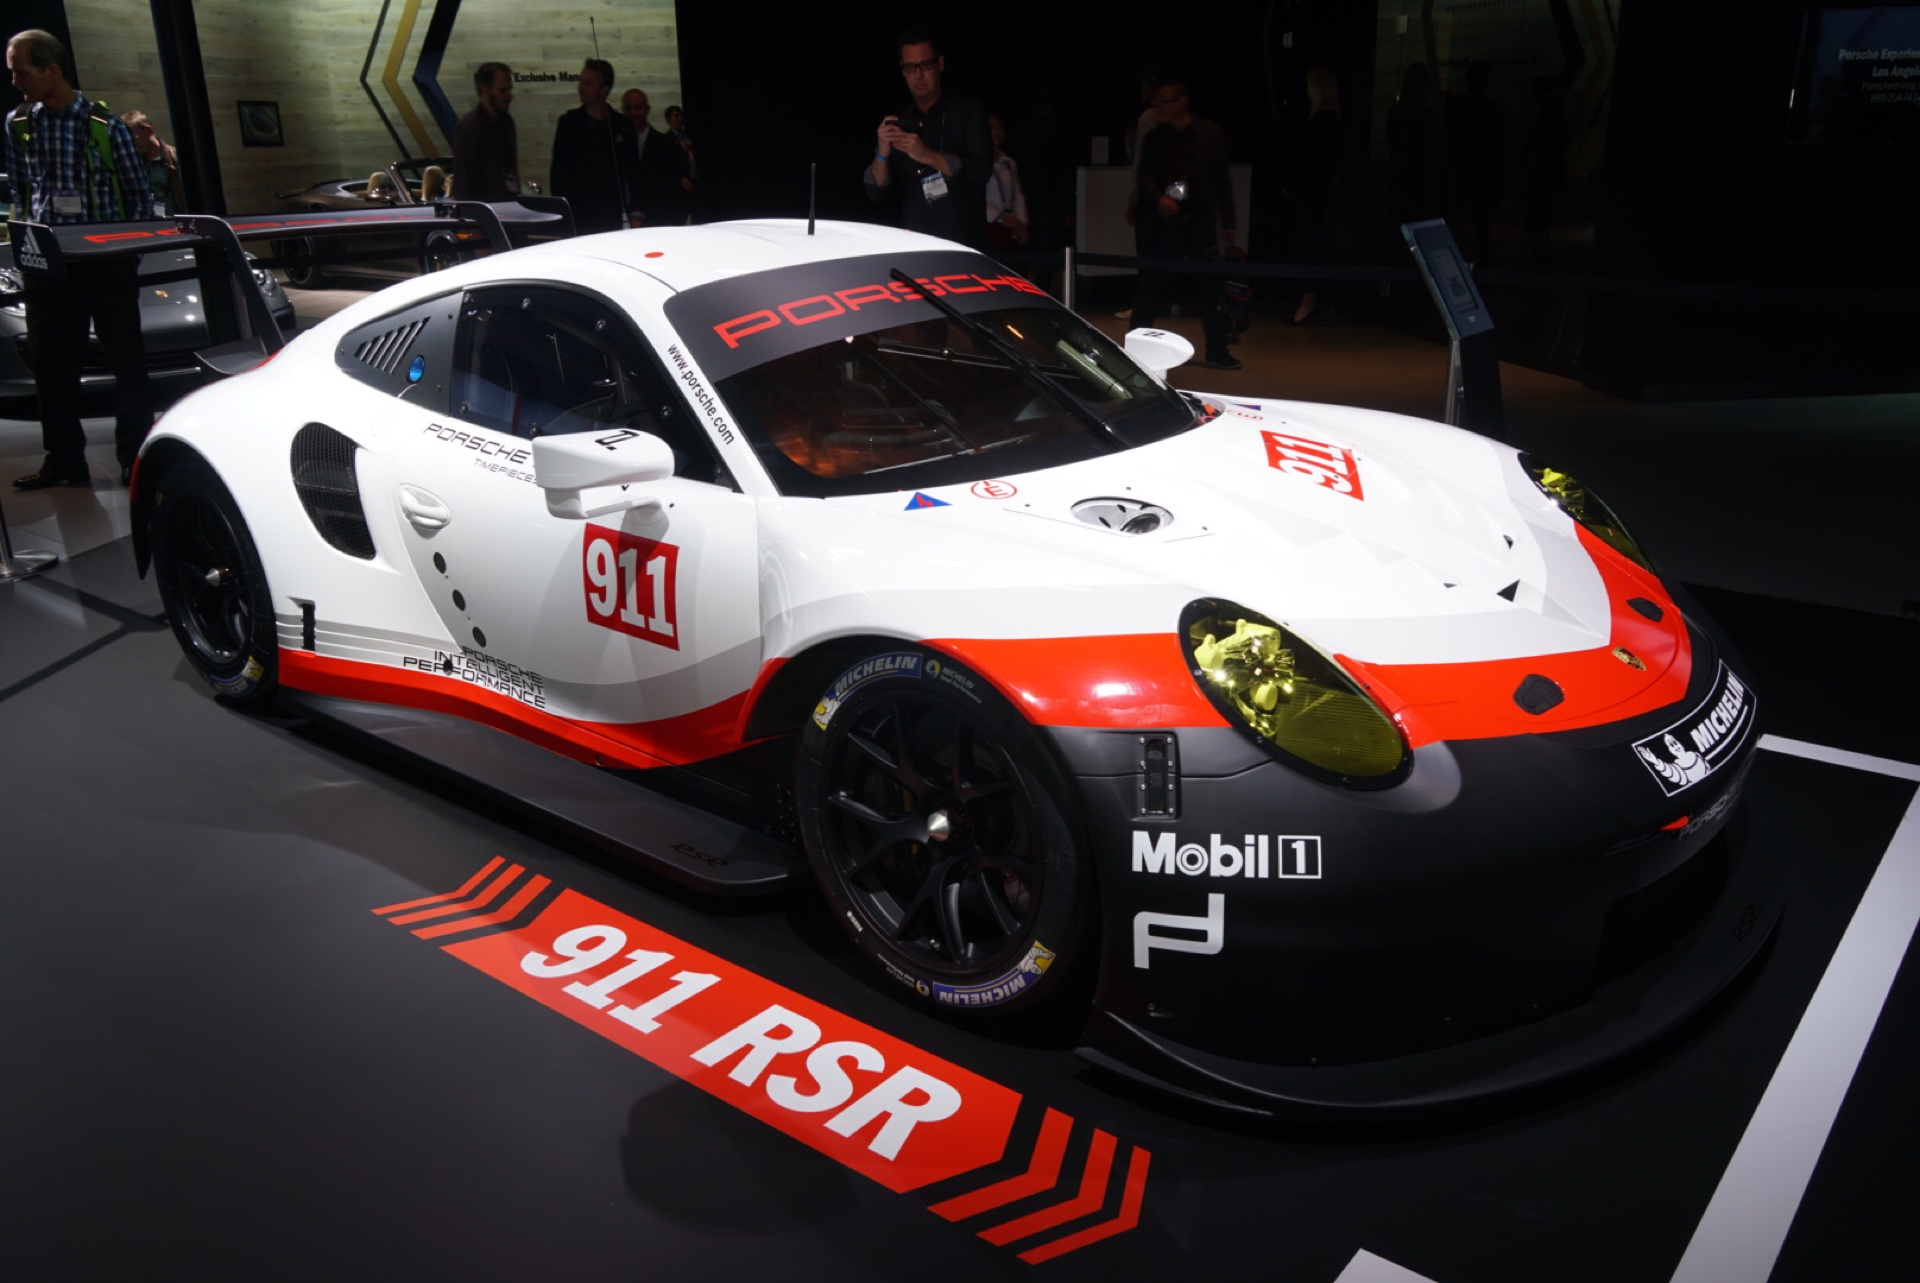 Porsche 911 finally adopts mid-engine layout with 2017 RSR